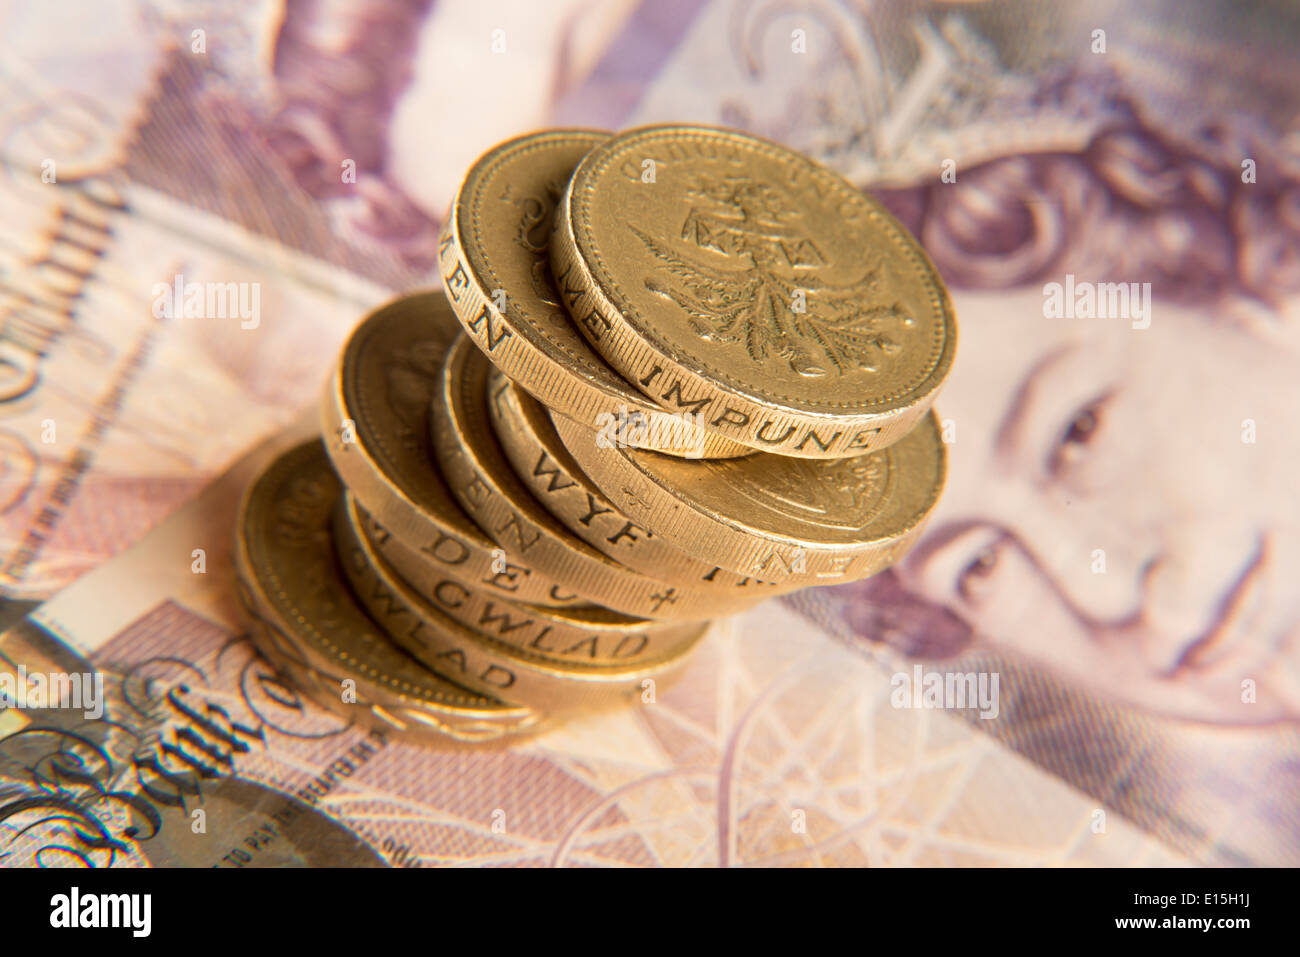 a pile of pound coins and some twenty pound notes Stock Photo